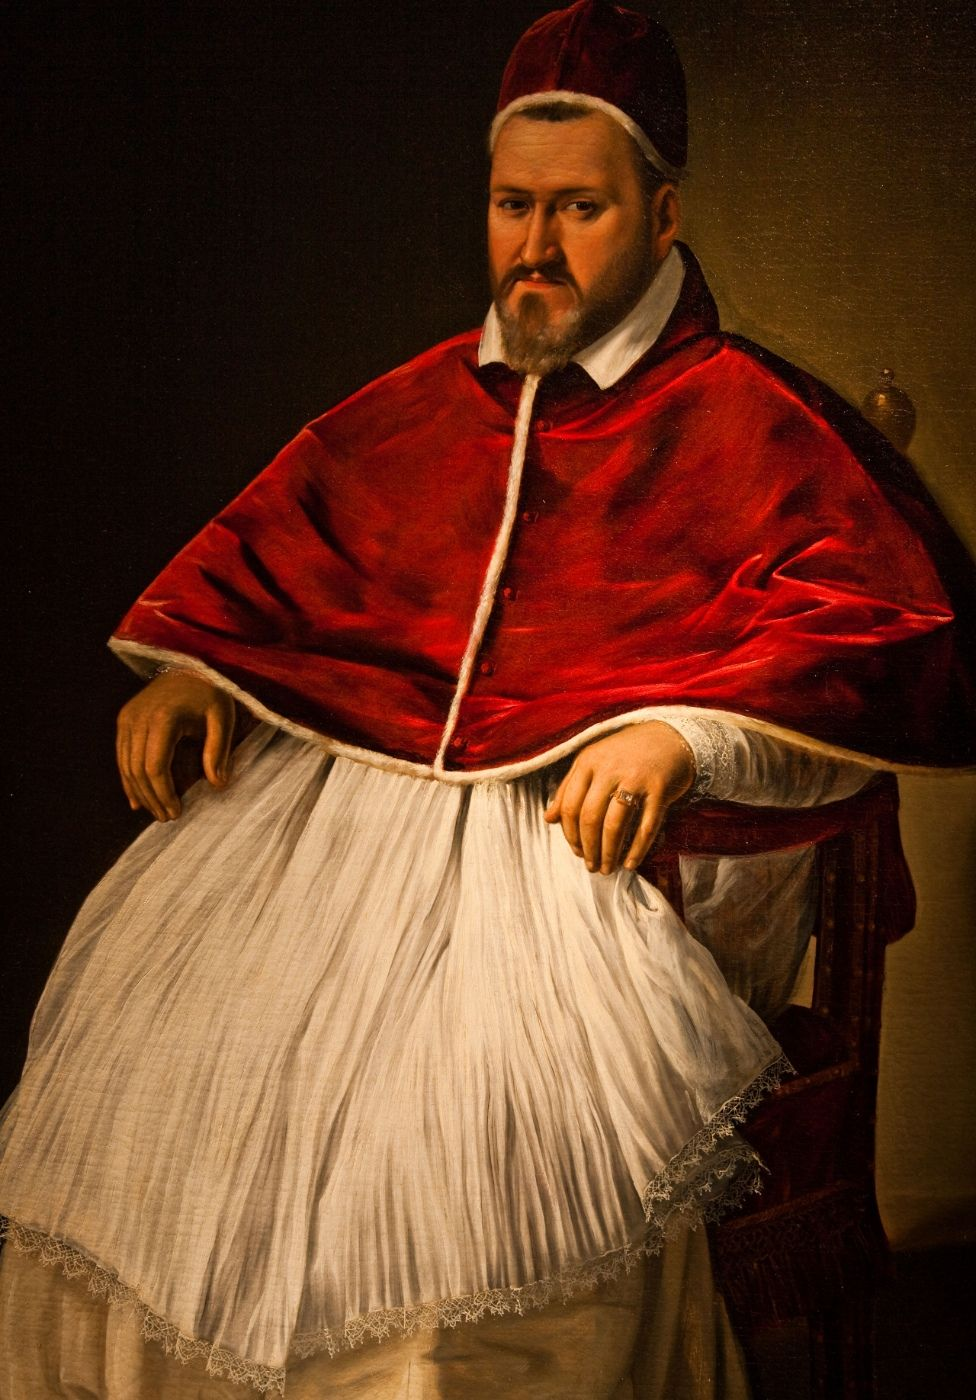 Caravaggio's portrait of Pope Paul V - made before the Pope sentenced him to death